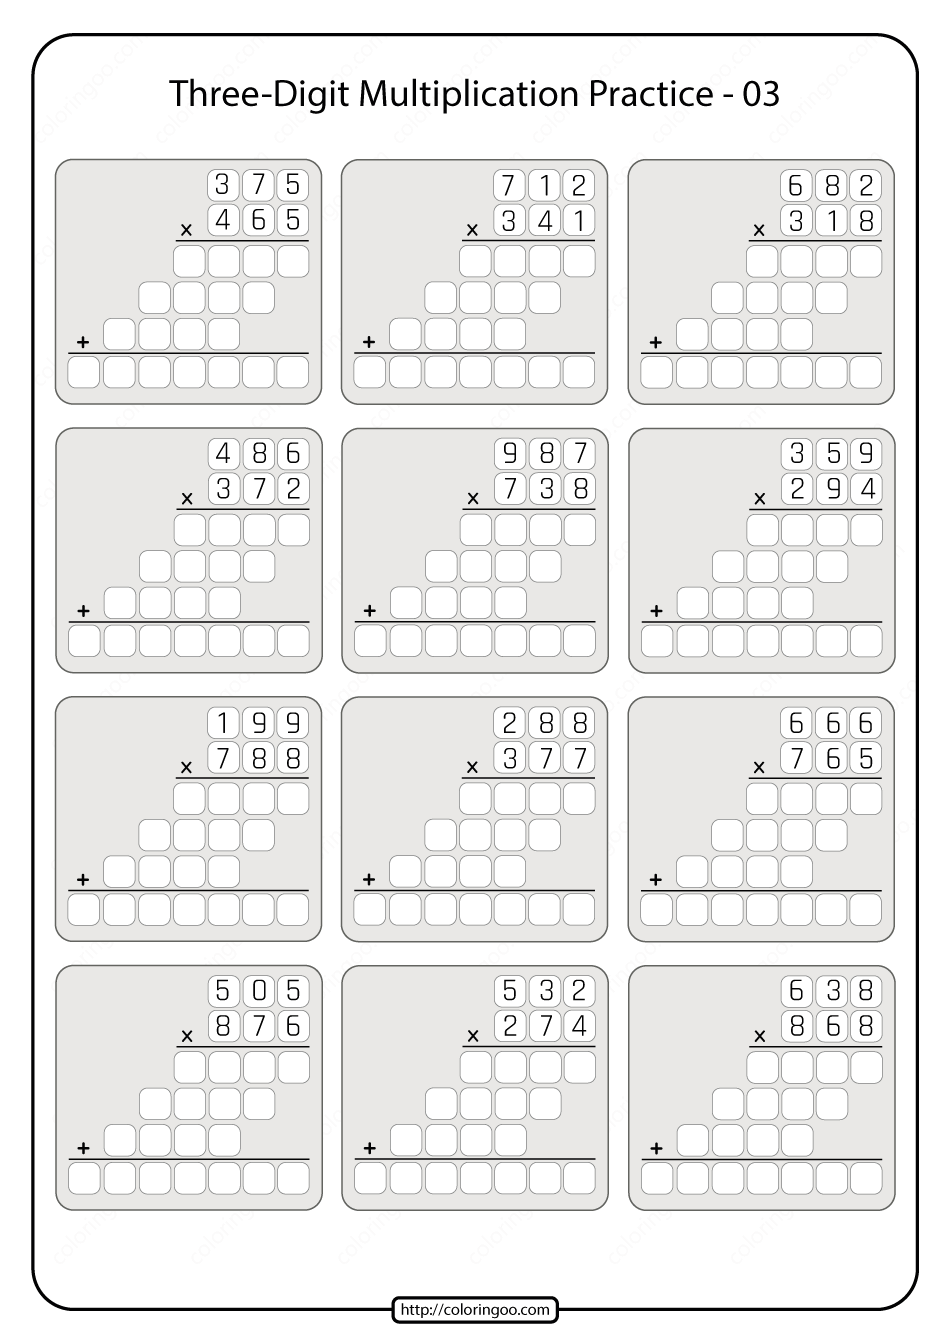 Three-digit Multiplication Practice Worksheet 03